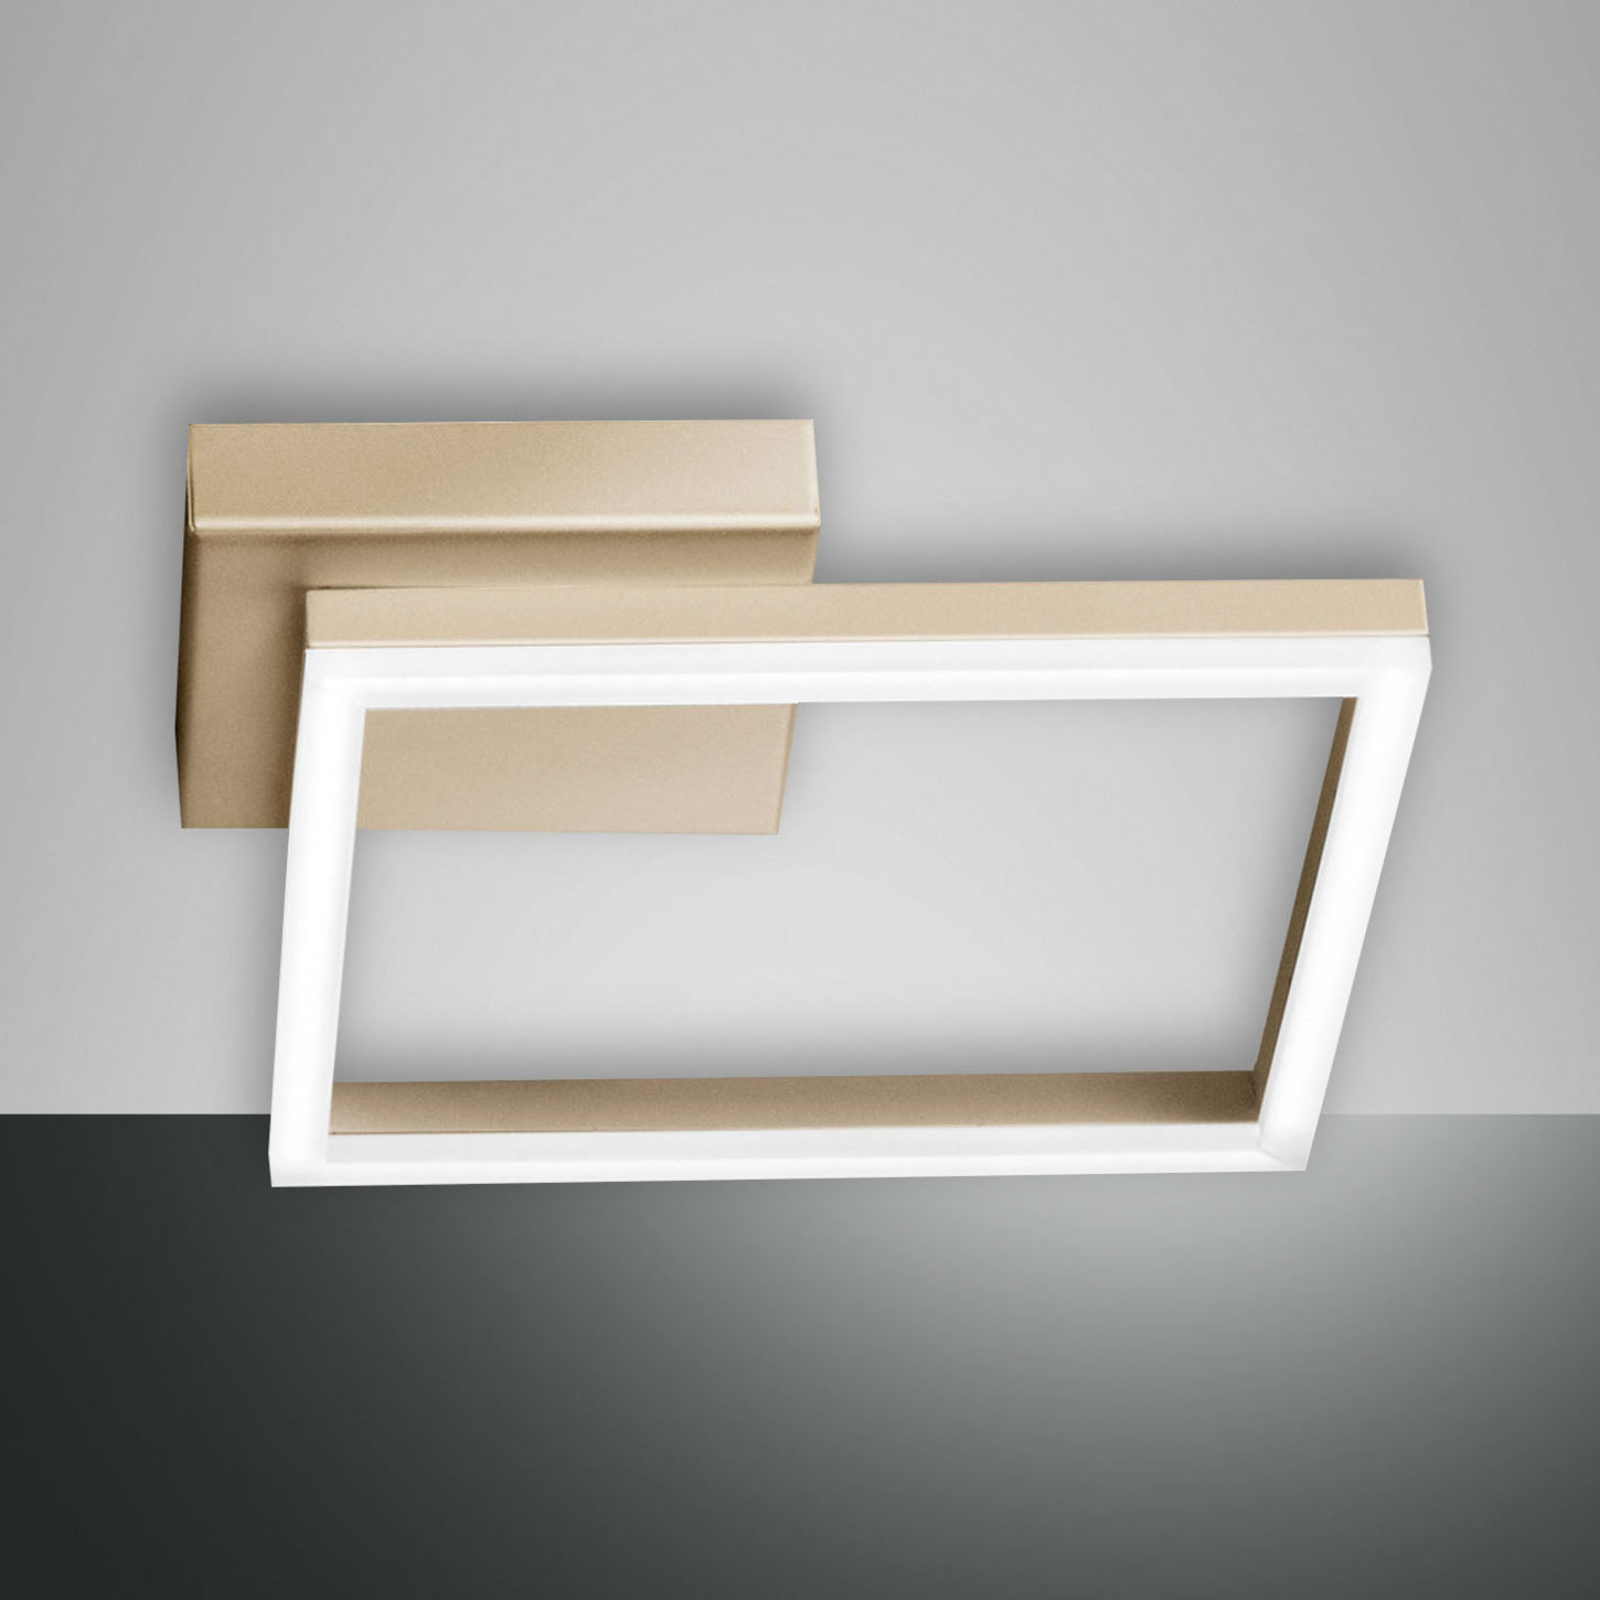 LED plafondlamp Bard, 45x45cm, matgoud finish